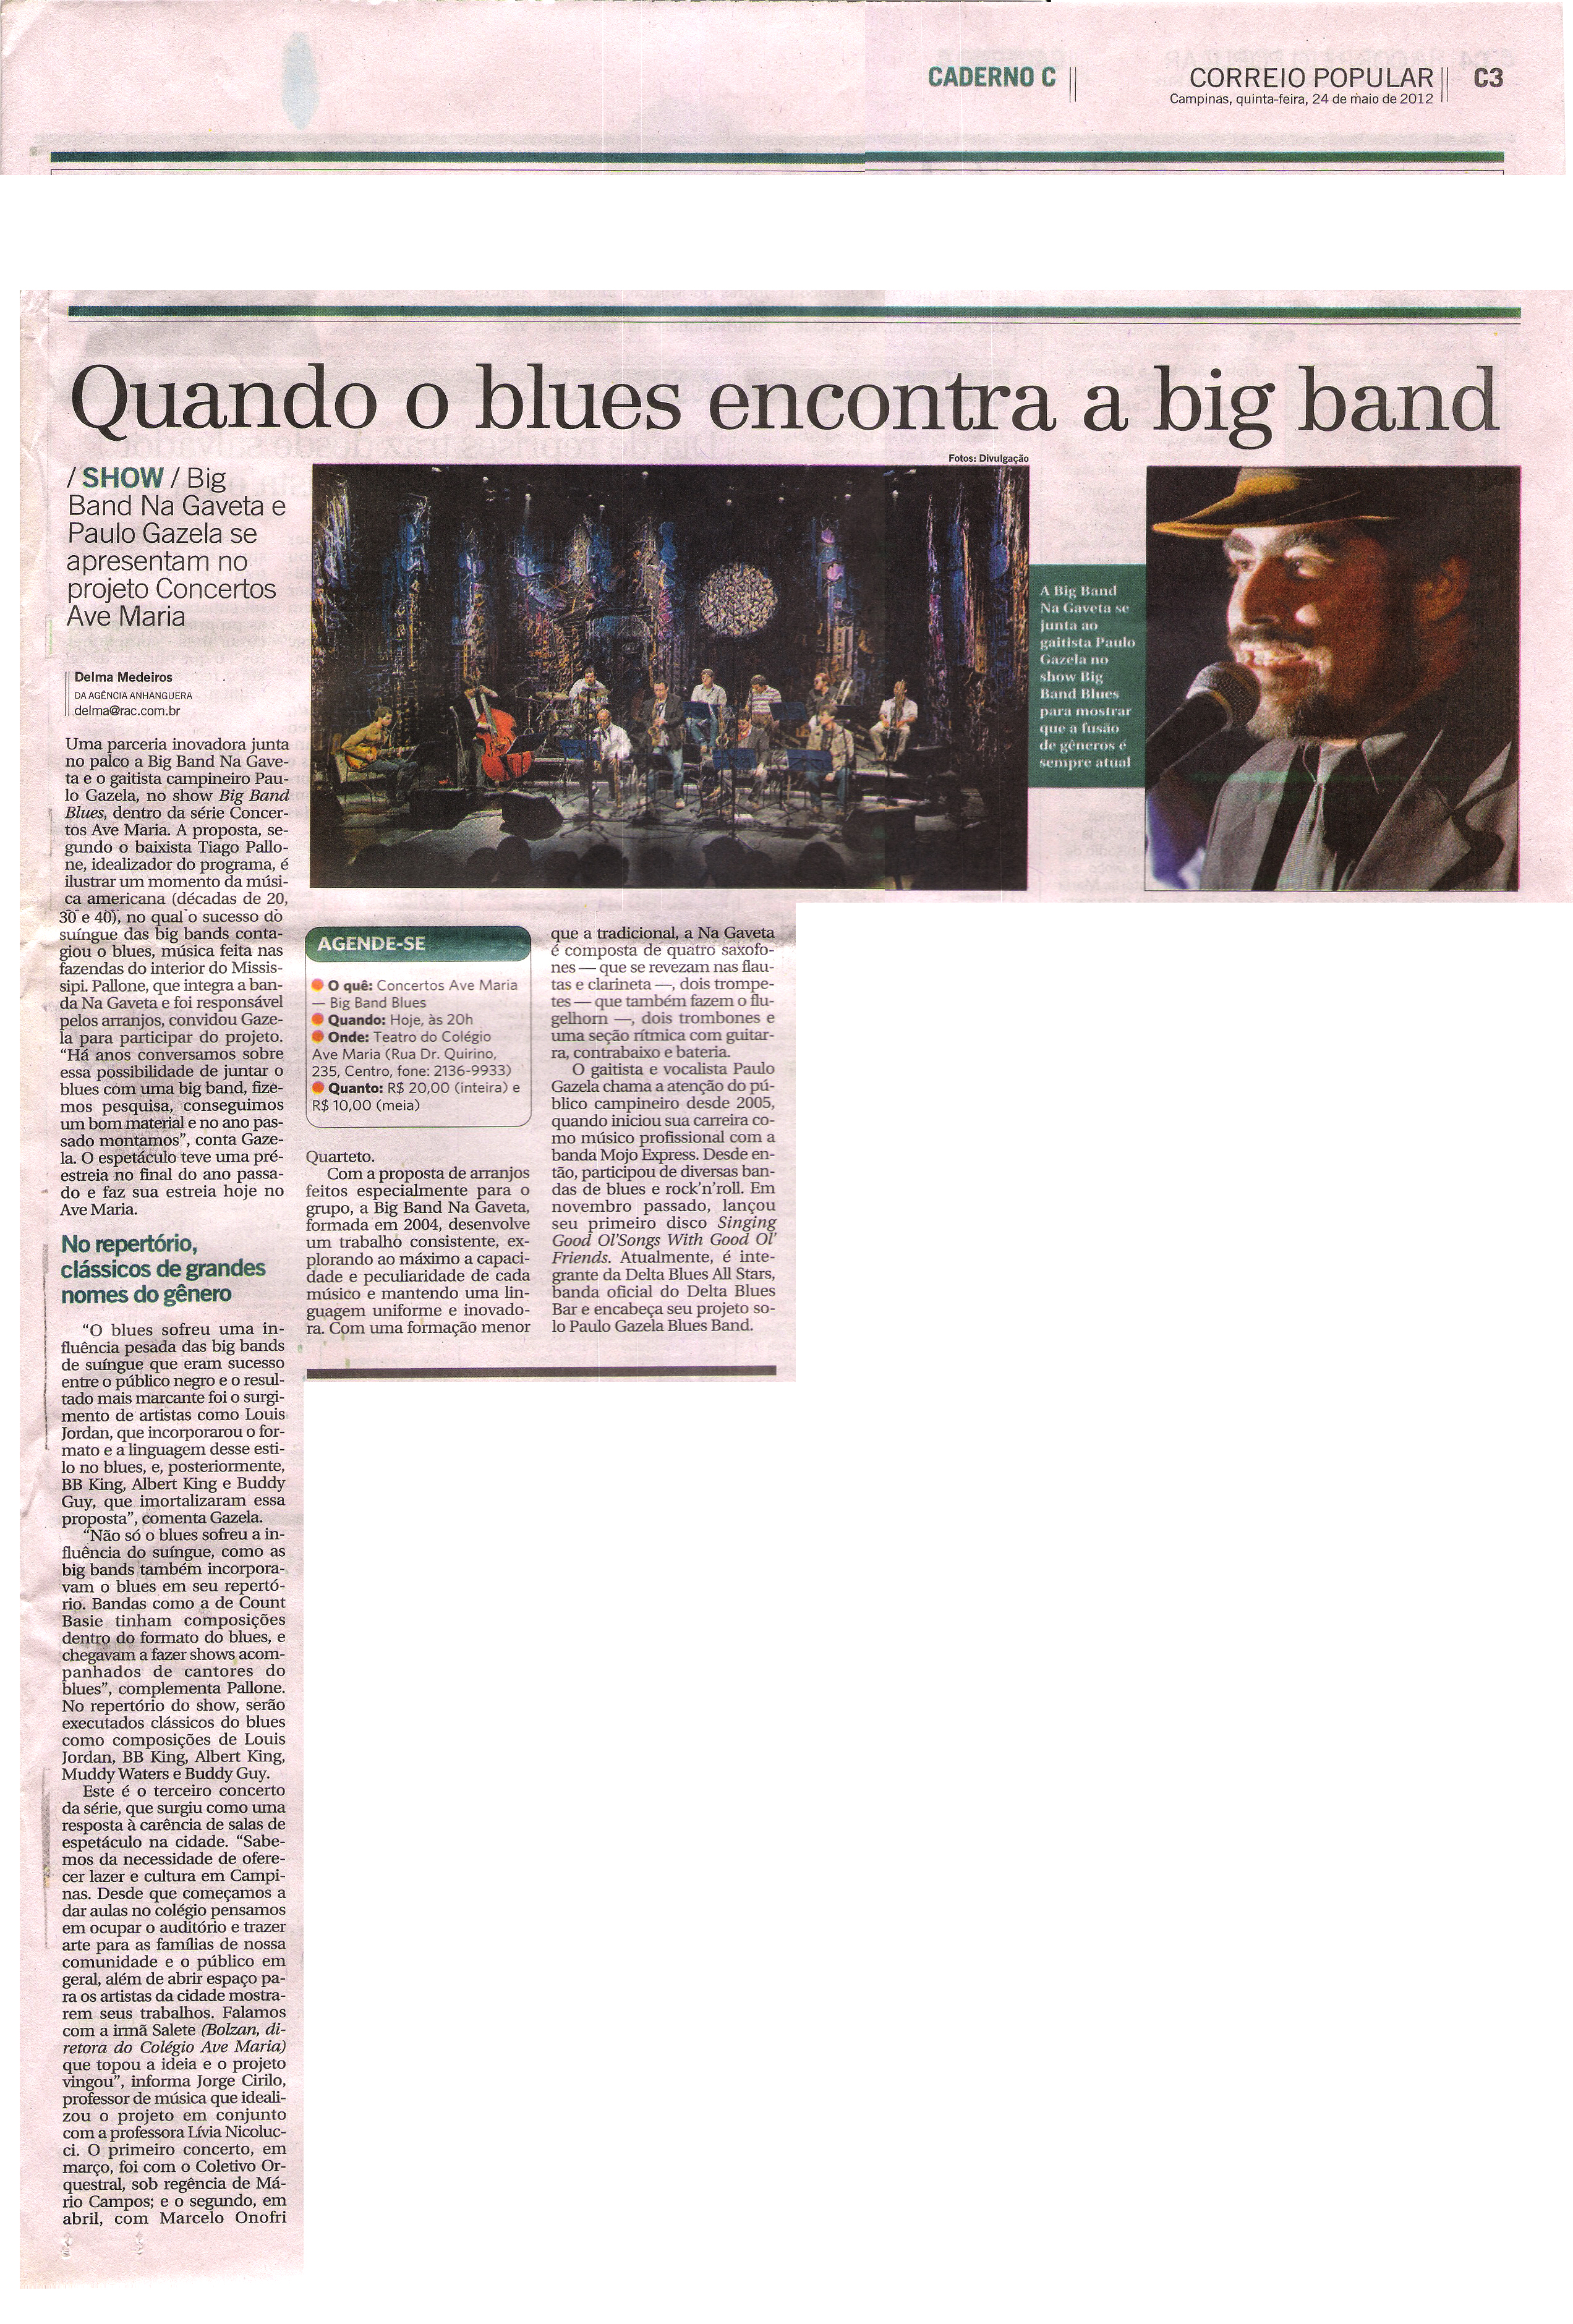 2012_24 de Maio_ Correio Popular_ Show da Big band Blues no Colégio Ave Maria.jp